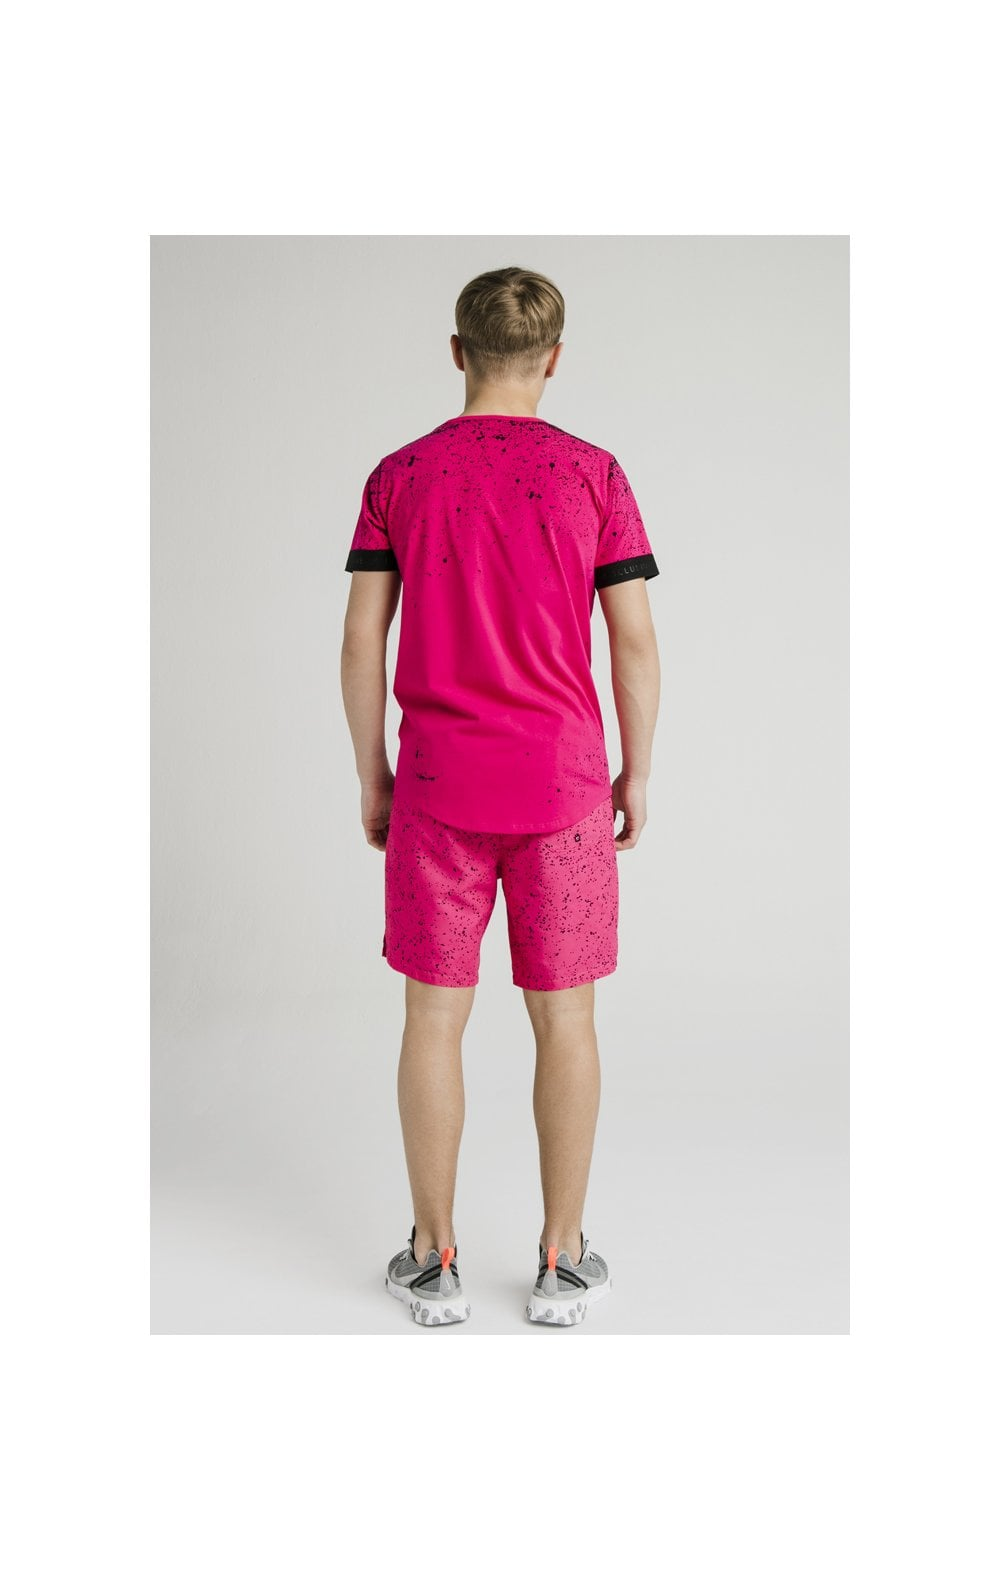 Illusive London Swim Shorts - Black & Pink (5)